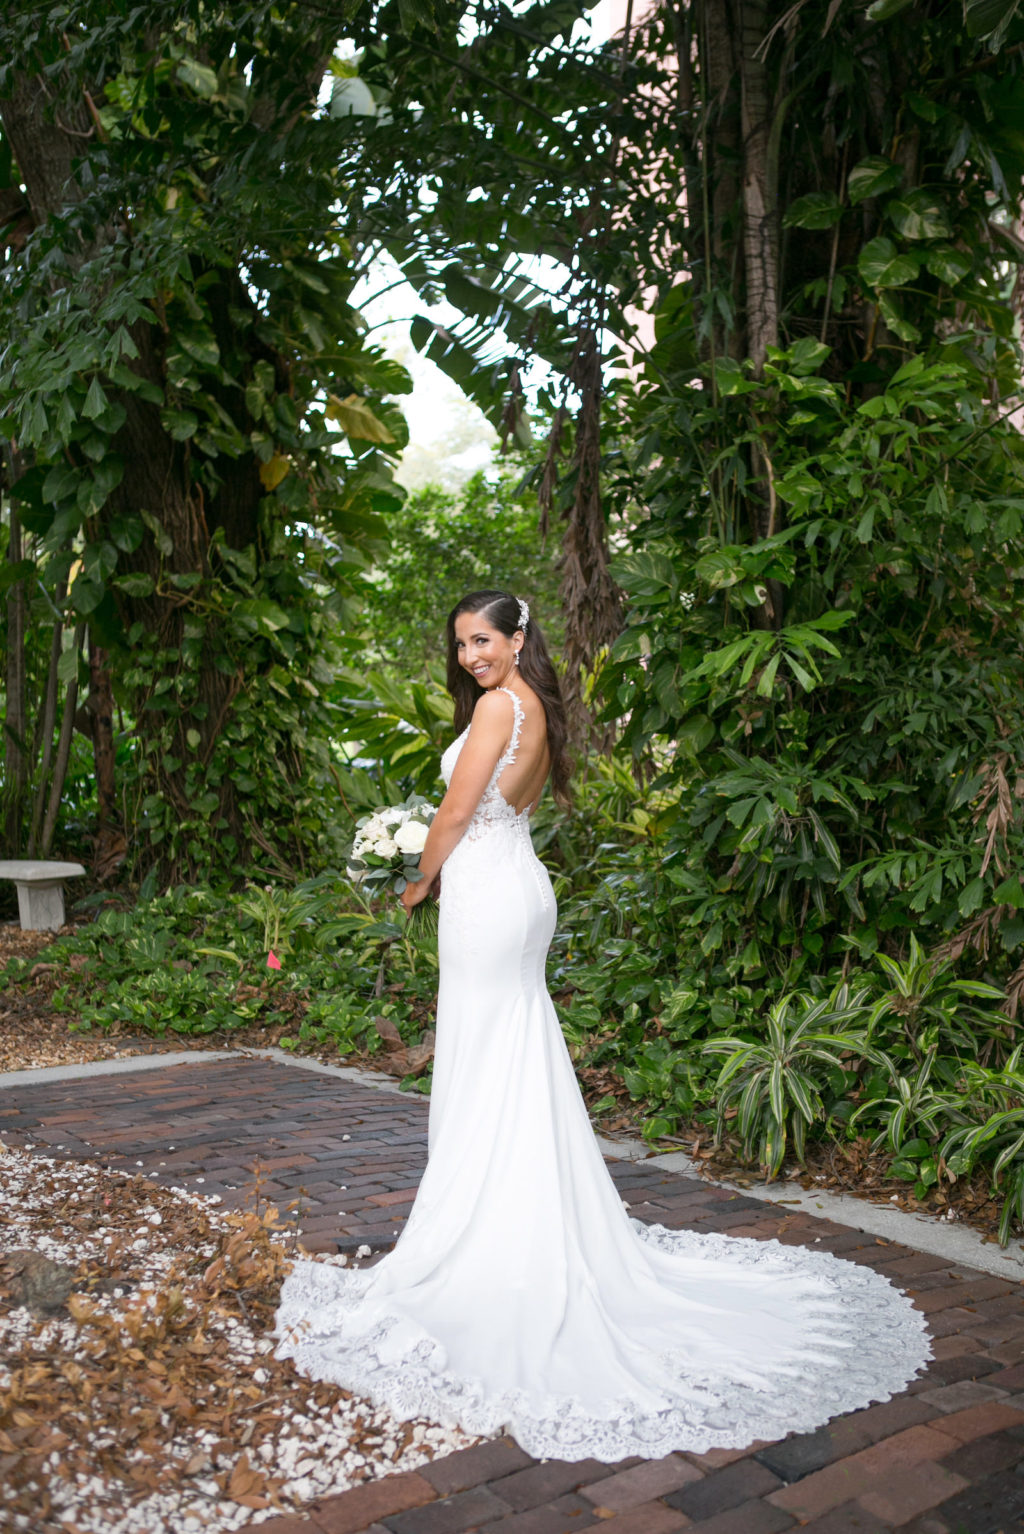 Elegant Bride in Romantic Open Back Floral Lace Strap and Train Crepe Fitted Wedding Dress | Tampa Bay Wedding Photographer Carrie Wildes Photography | Wedding Dress Shop Isabel O'Neil Bridal Collection